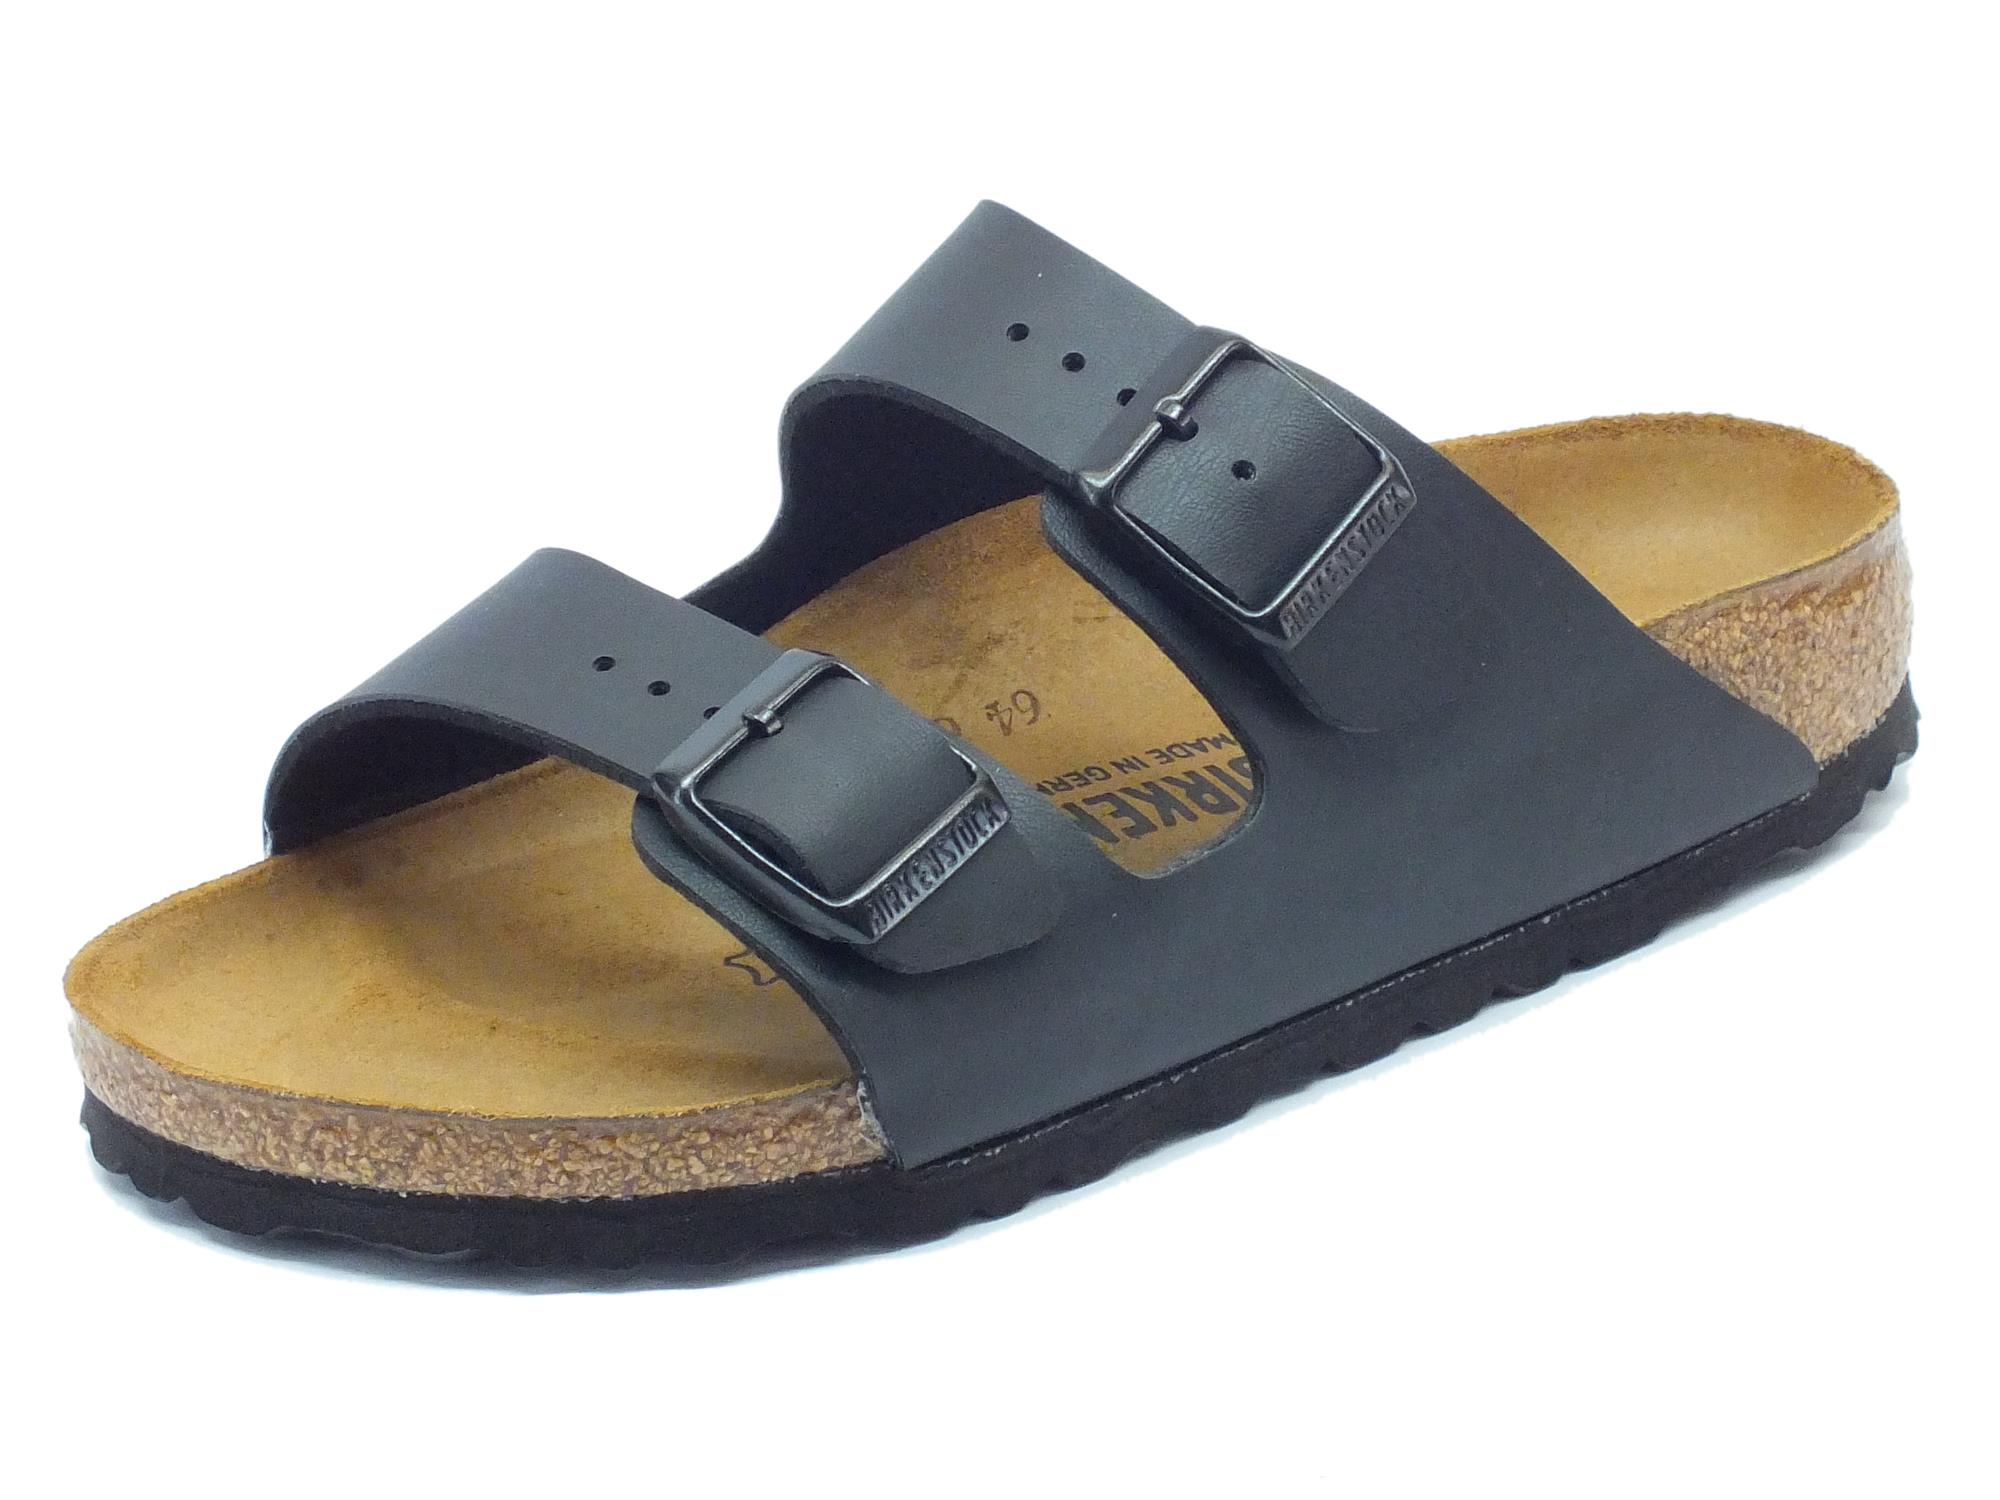 Sandali Birkenstock donna Arizona BS colore black - Vitiello Calzature a9d19d0c6f5